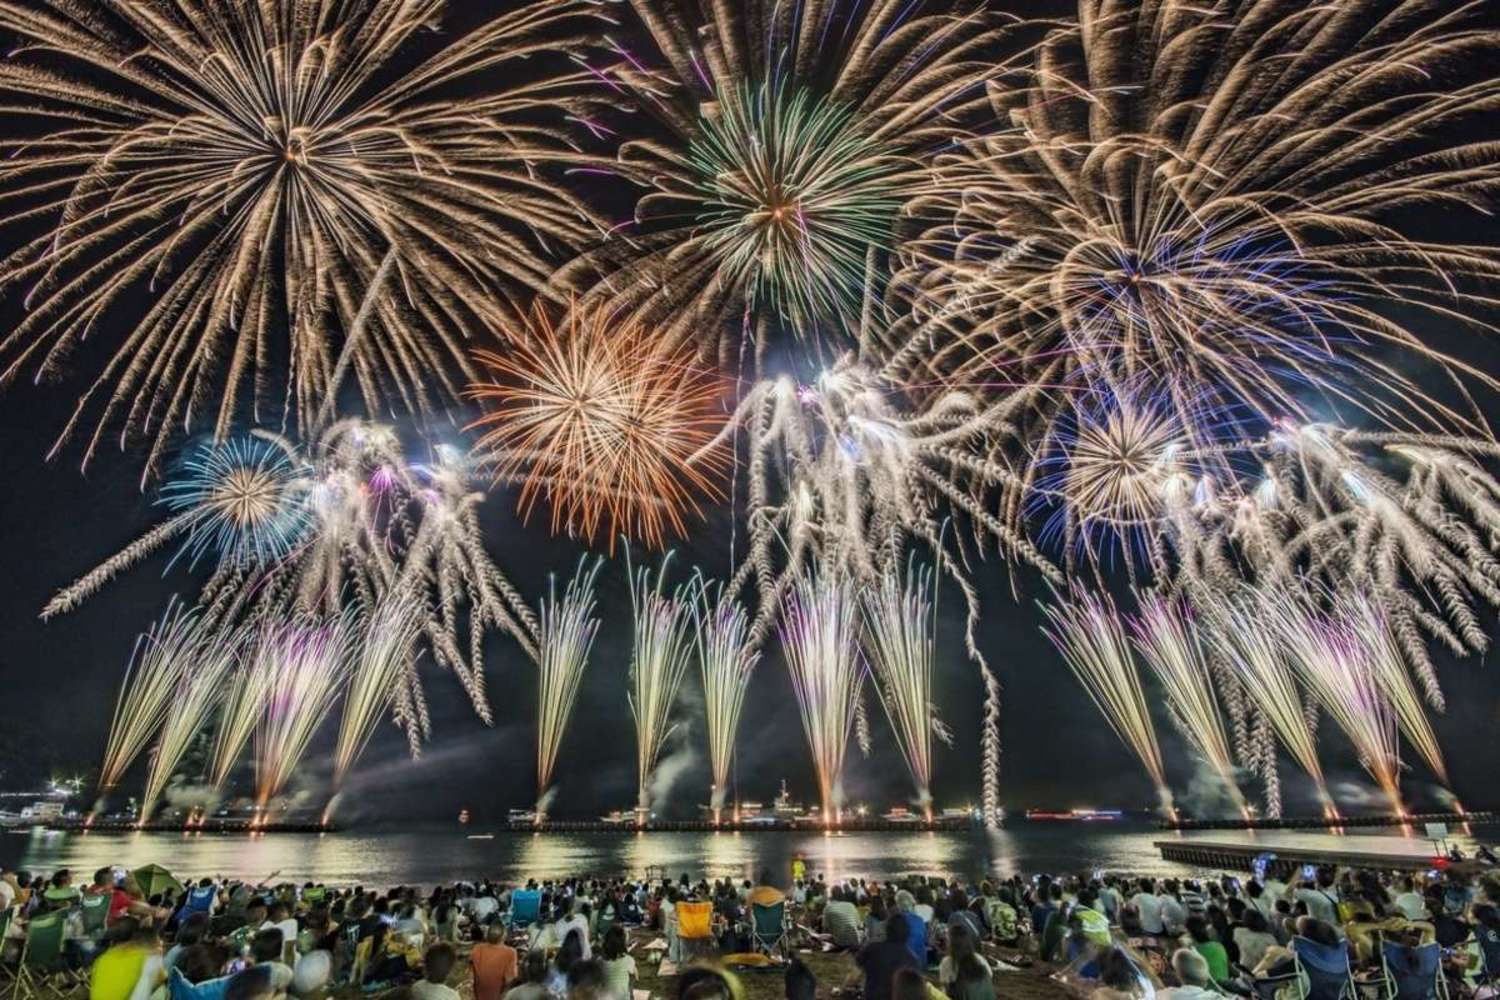 It is fireworks display for sea bathing! We enjoy scenic summer Toi Onsen